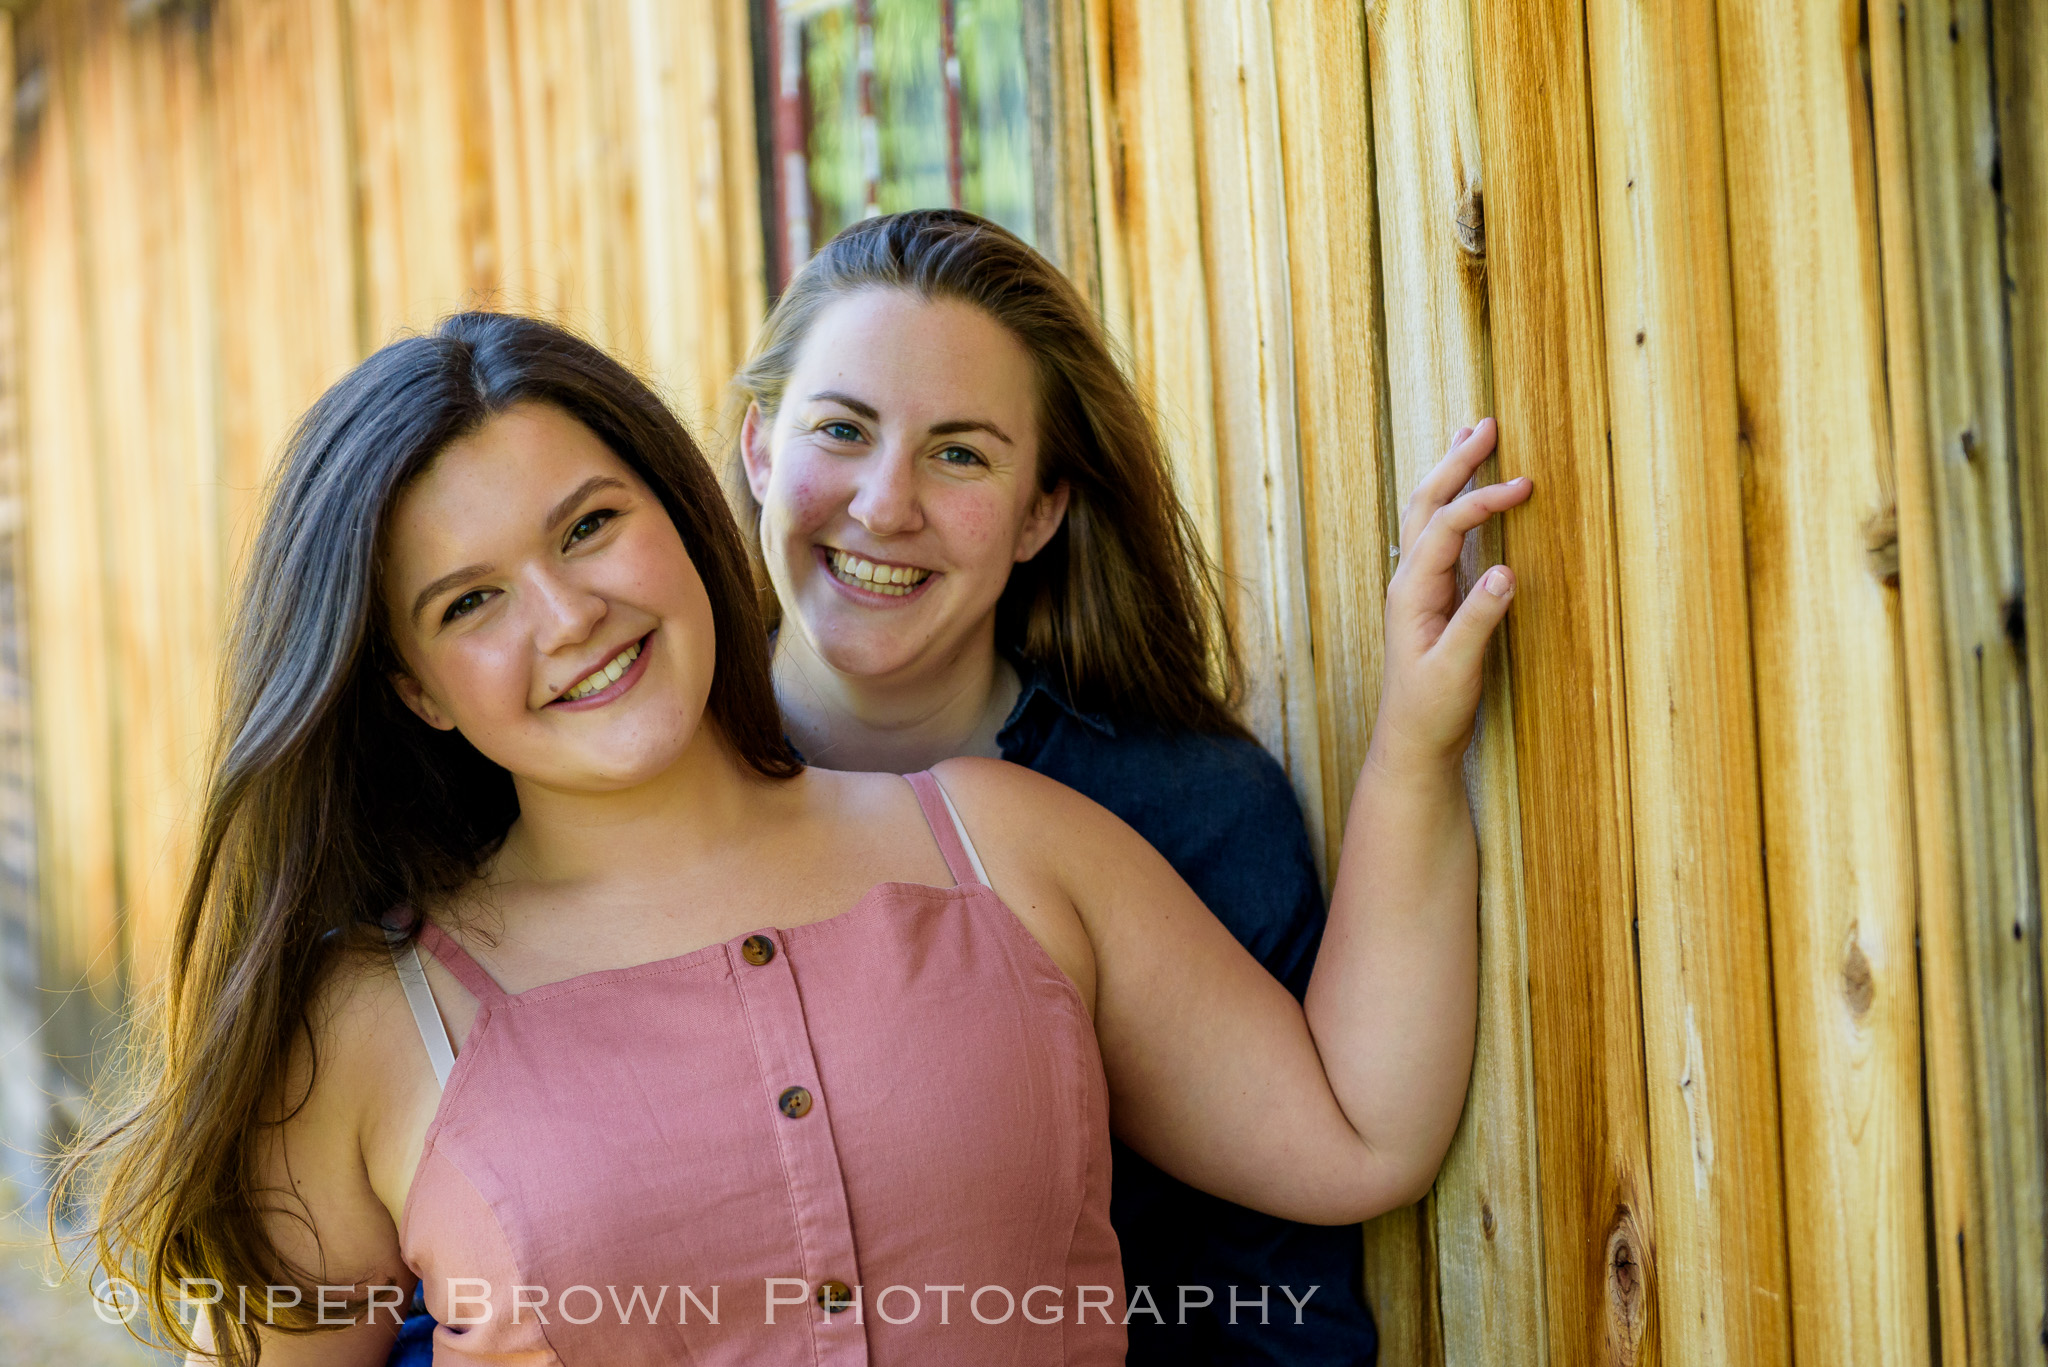 20190615-Smith Appleby House Engagement SessionMegan and Erin55.jpg